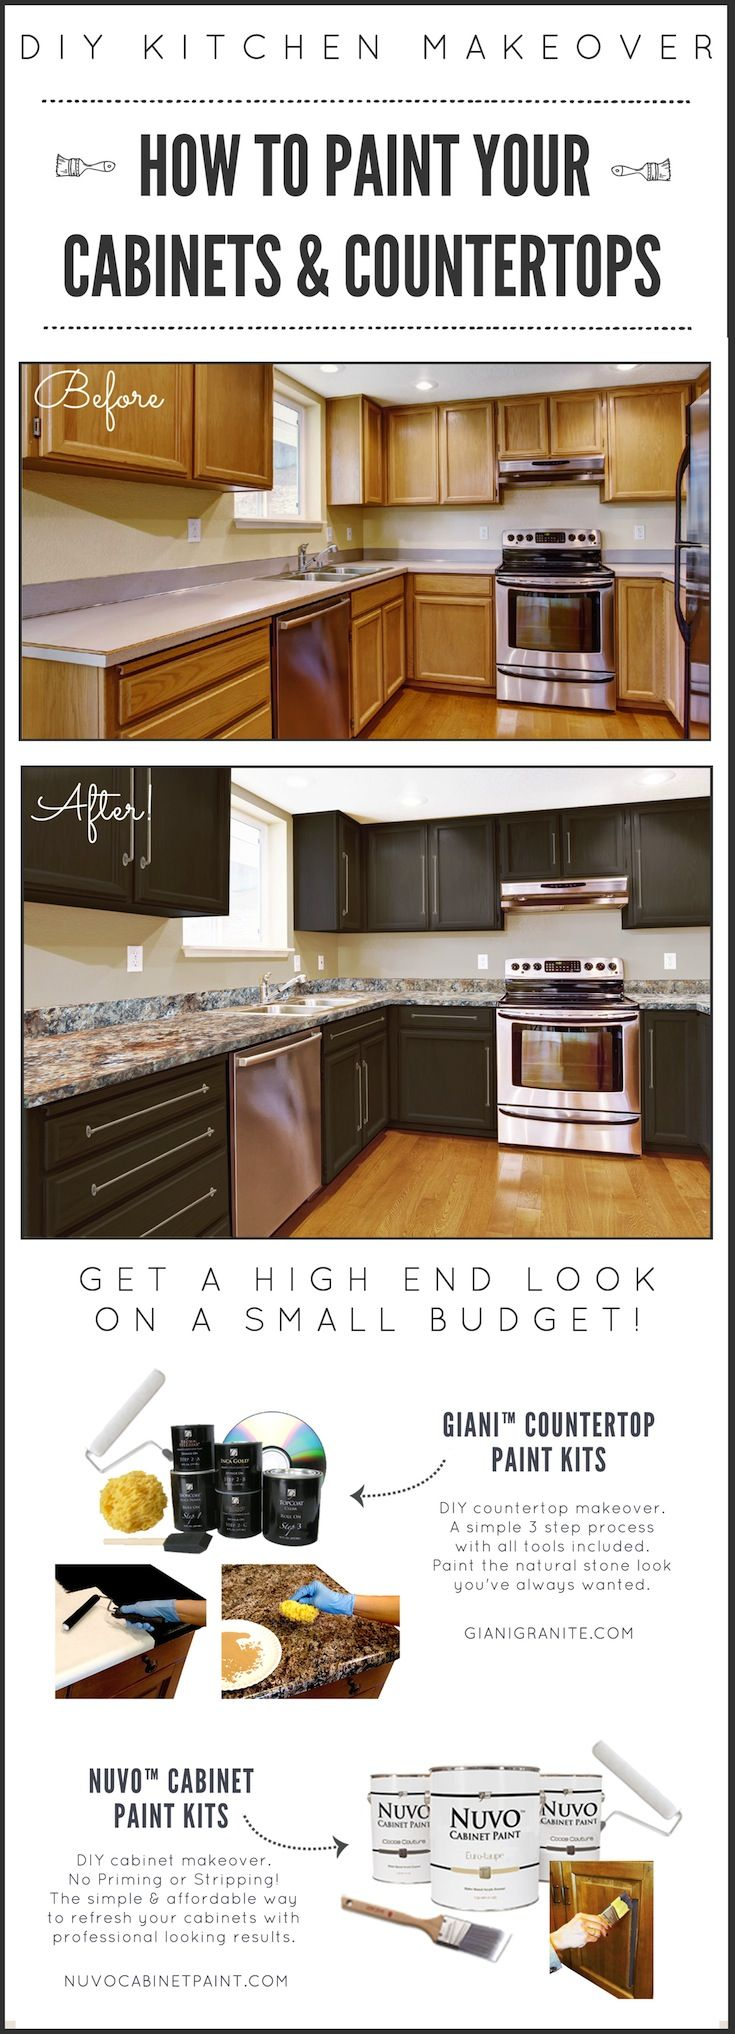 Diy kitchen makeover on a budget before and after giani granite